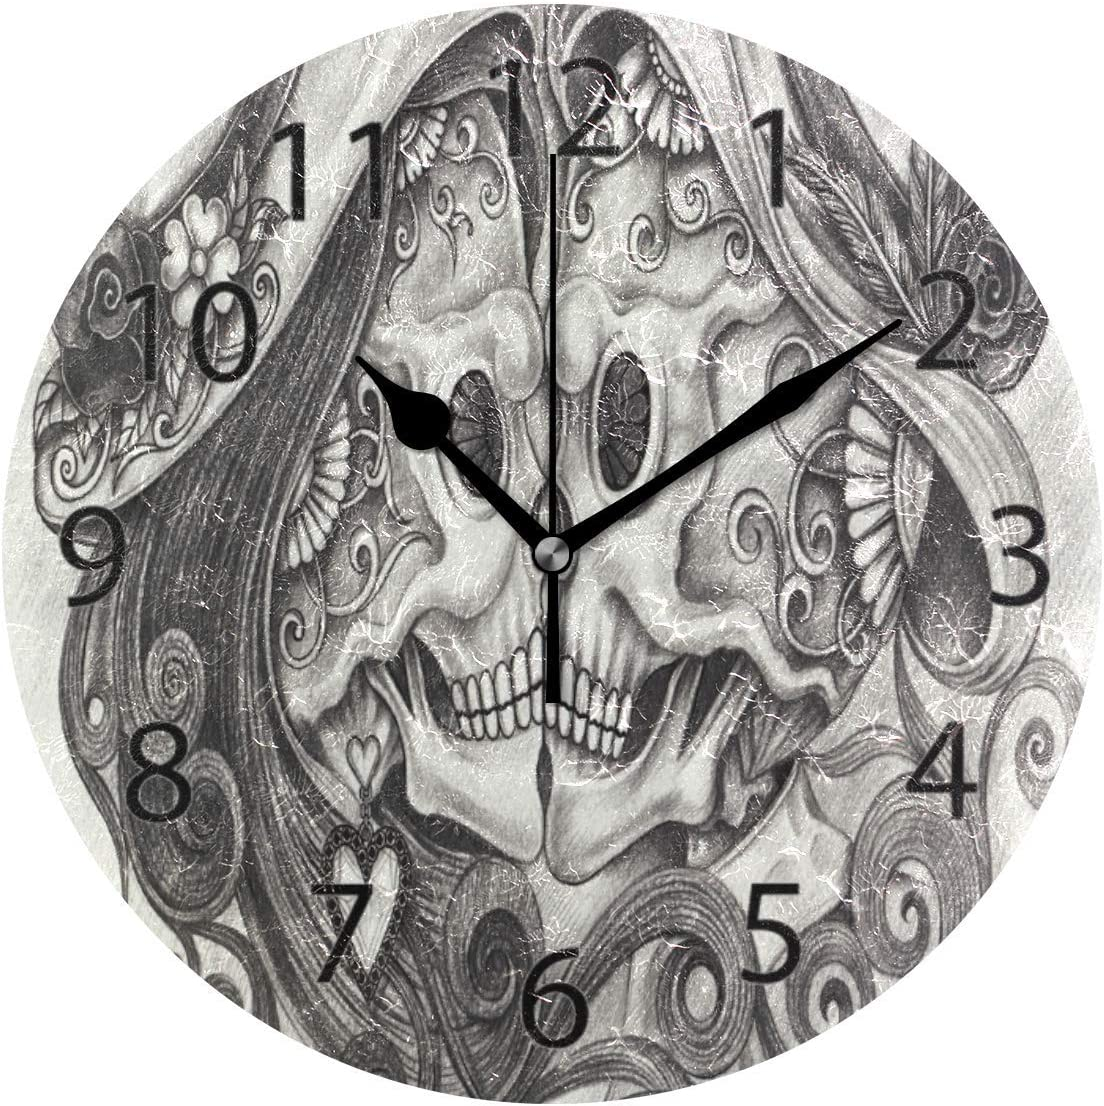 Promini Decorative Home Office Silent Non-Ticking Wooden Wall Clock 15 Inch Round Wall Clock for Living Room Office (Skull Couple Kiss Day of Dead)